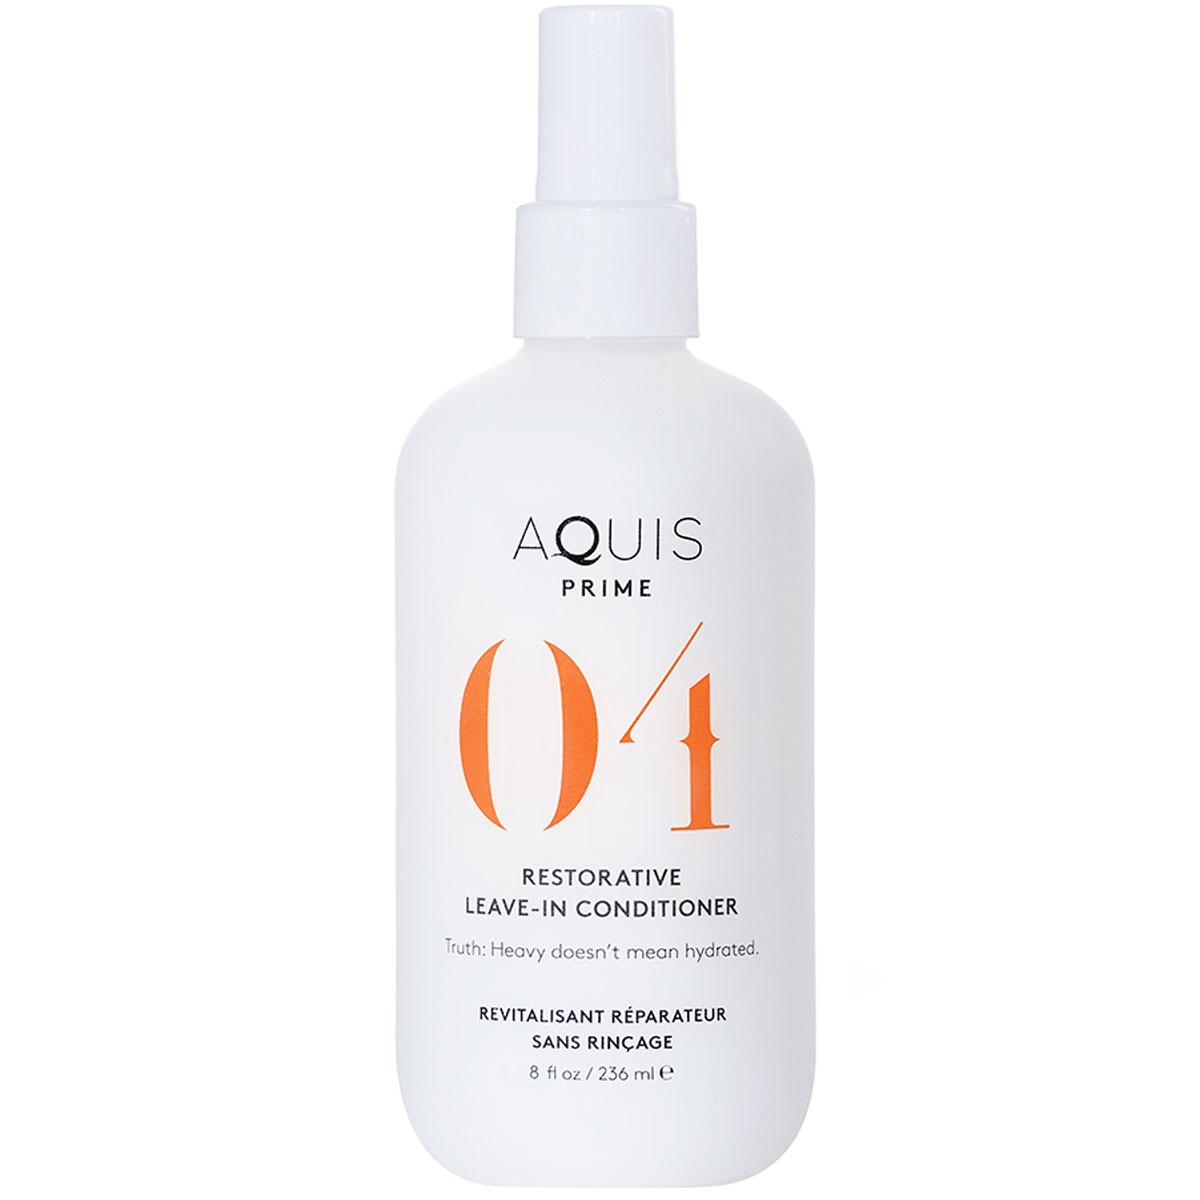 PRIME RESTORATIVE LEAVE-IN CONDITIONER